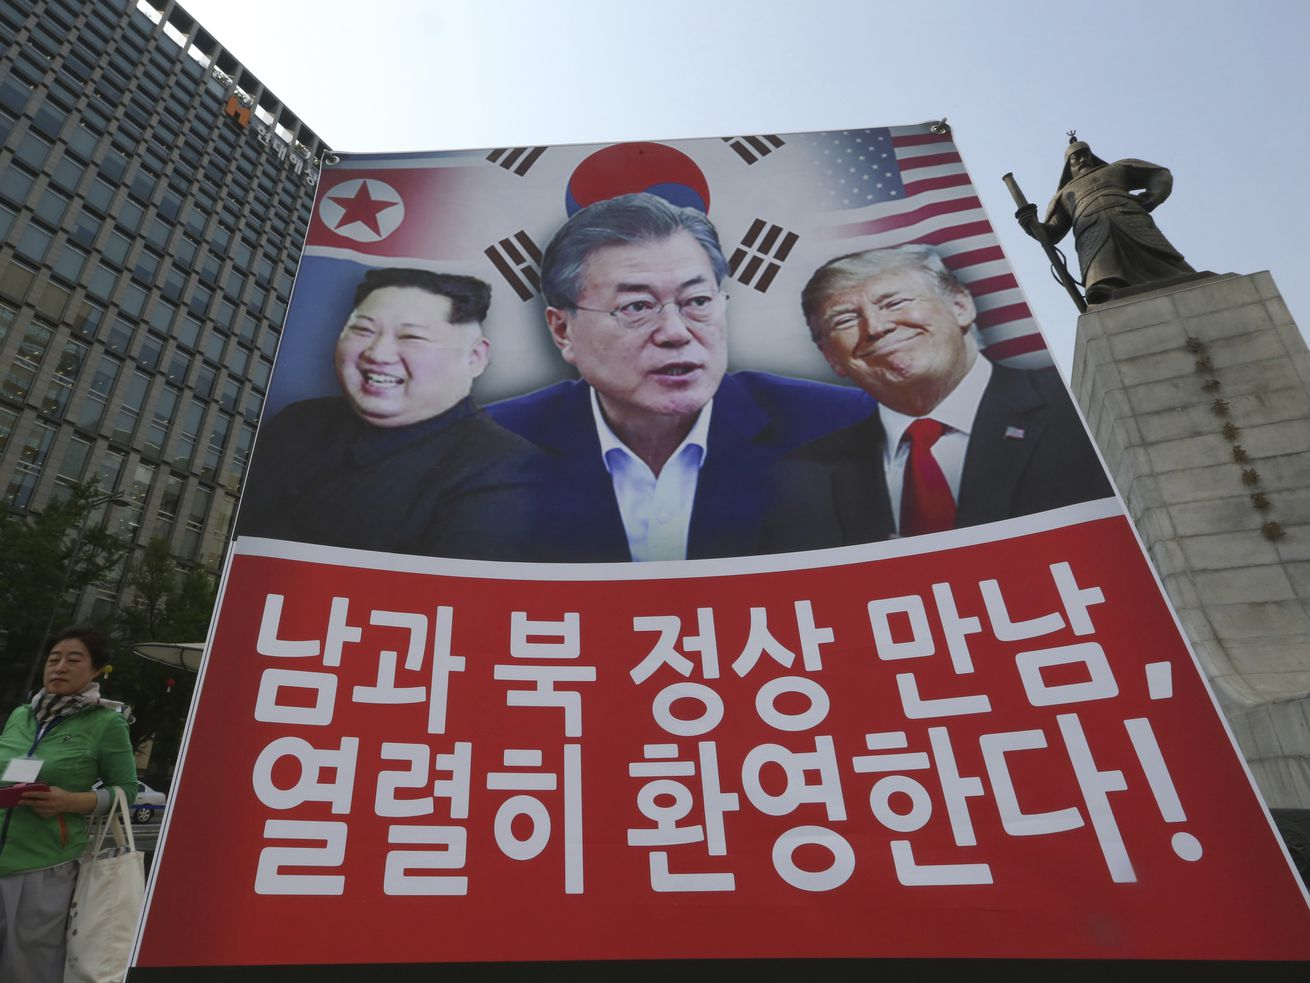 Growing conflicts between Japan and South Korea must be reduced